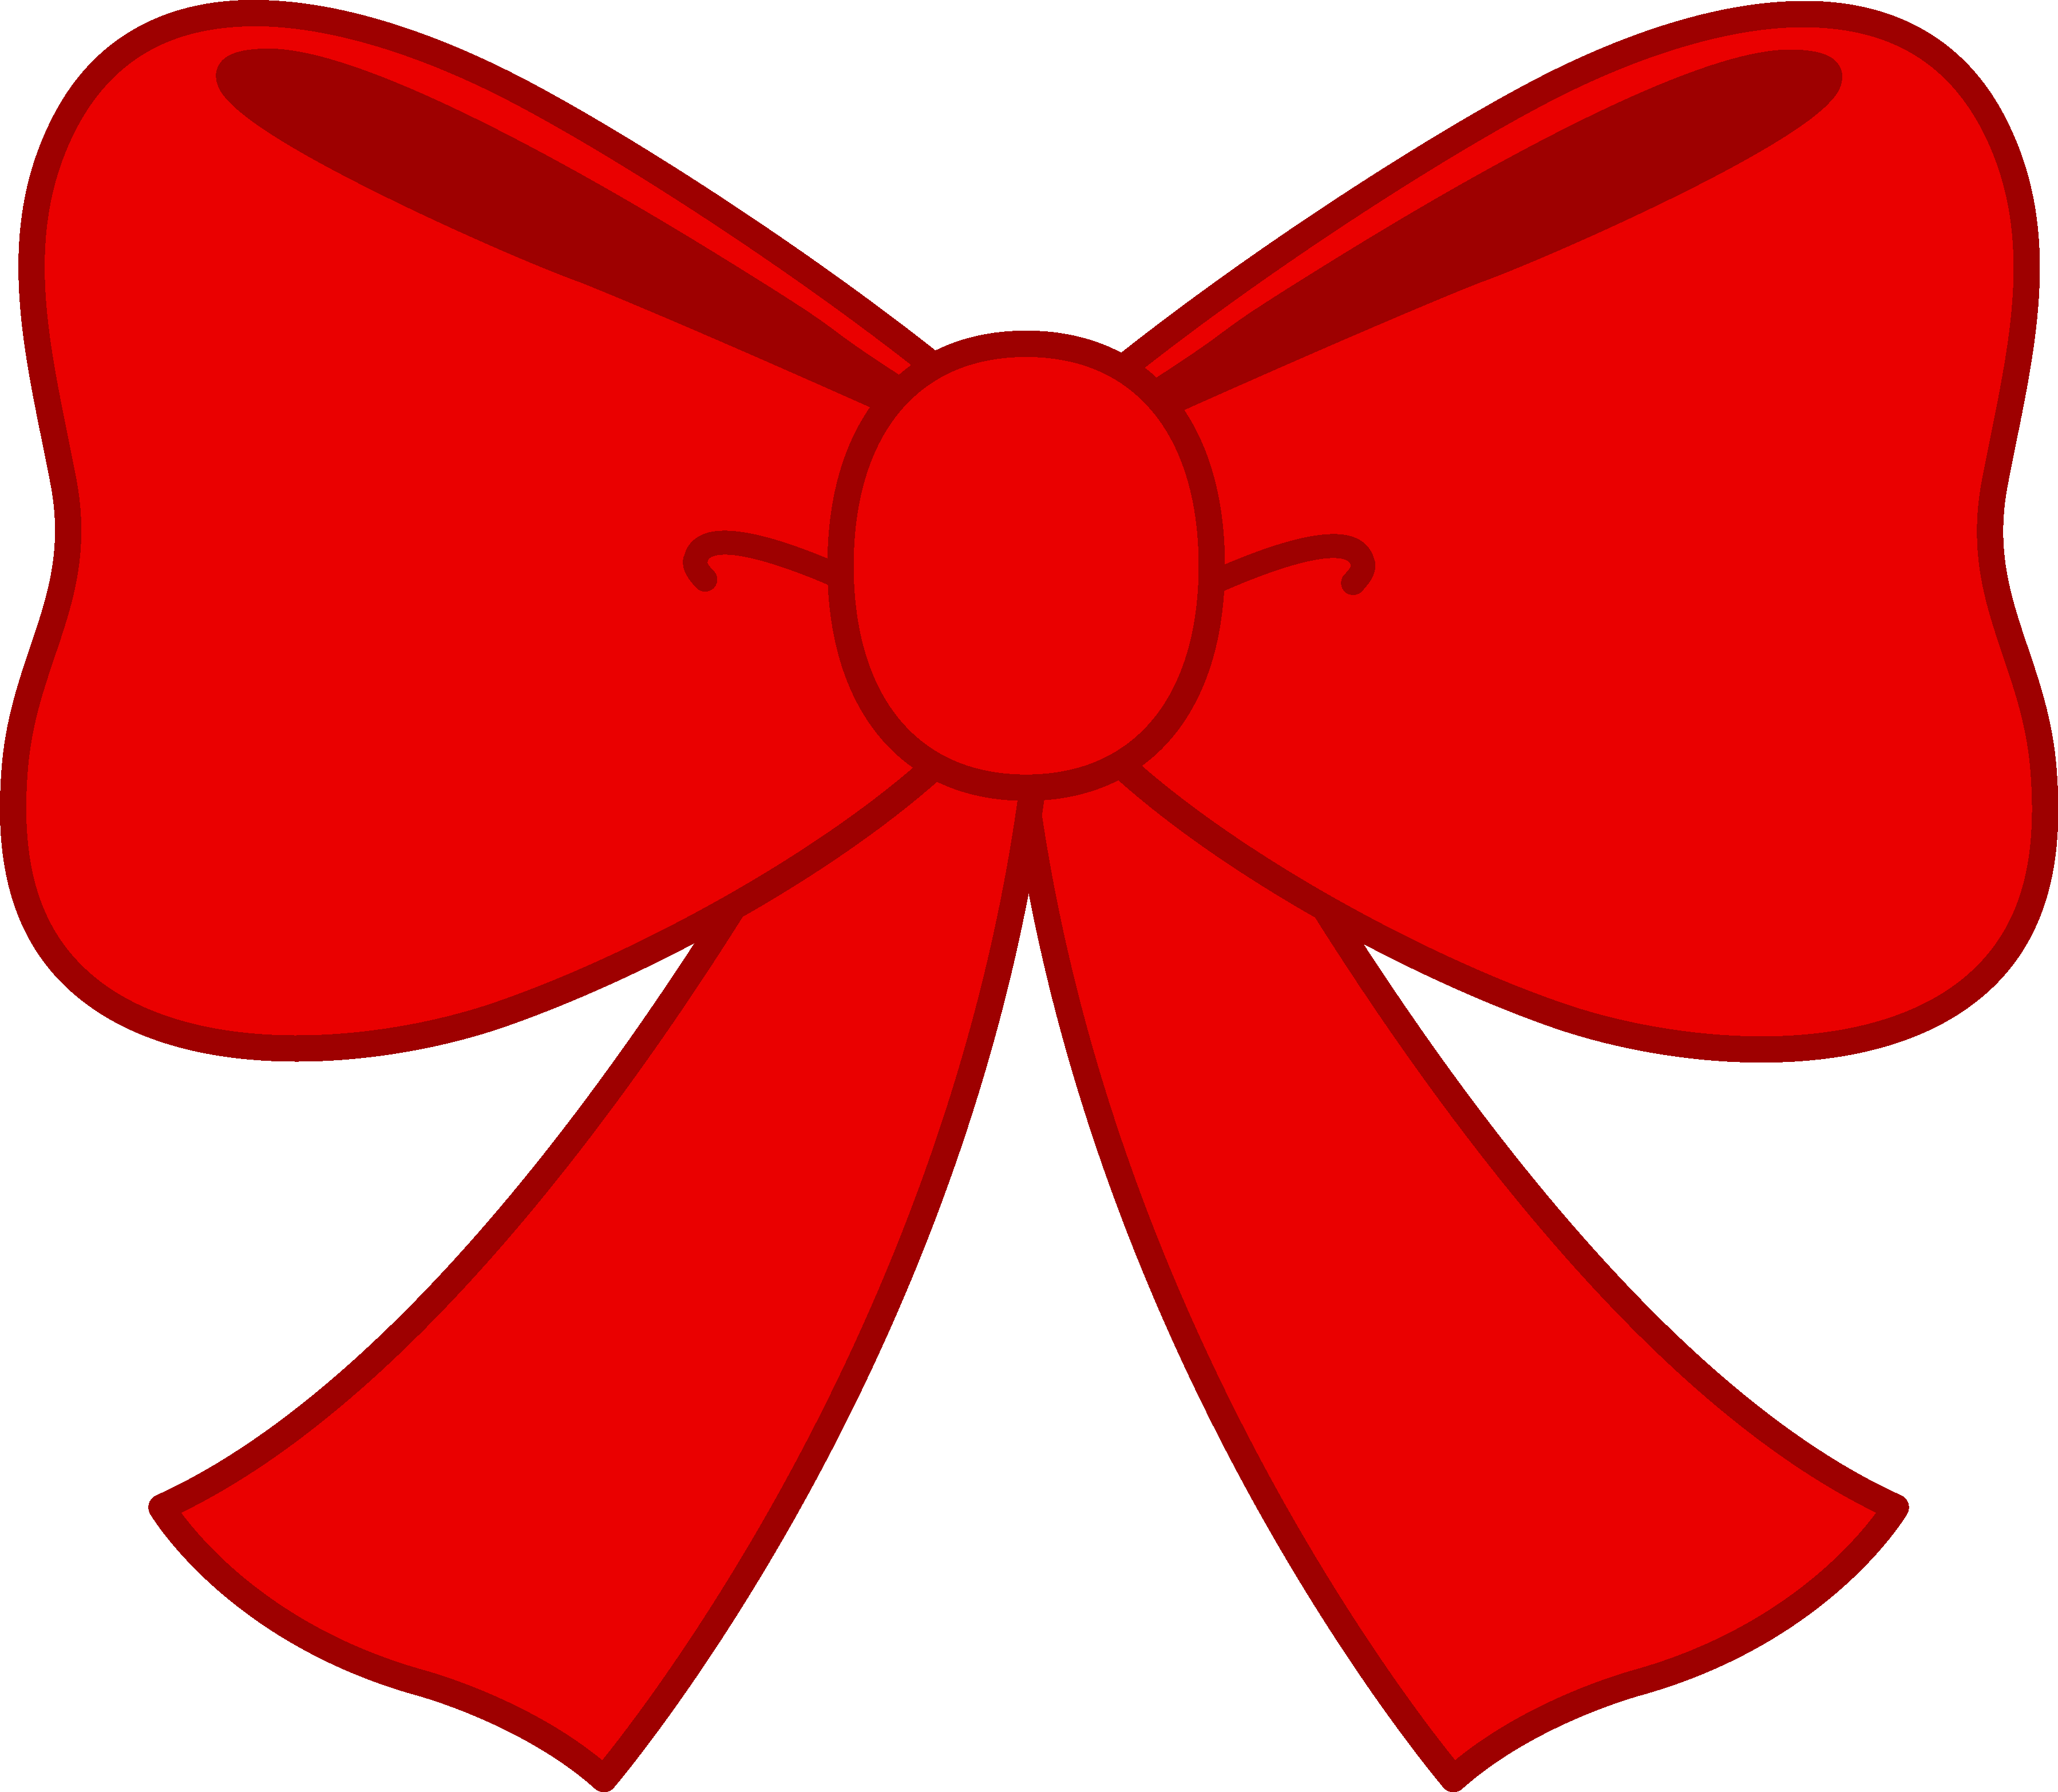 Cute Red Bow Clipart - Free .-Cute Red Bow Clipart - Free .-0